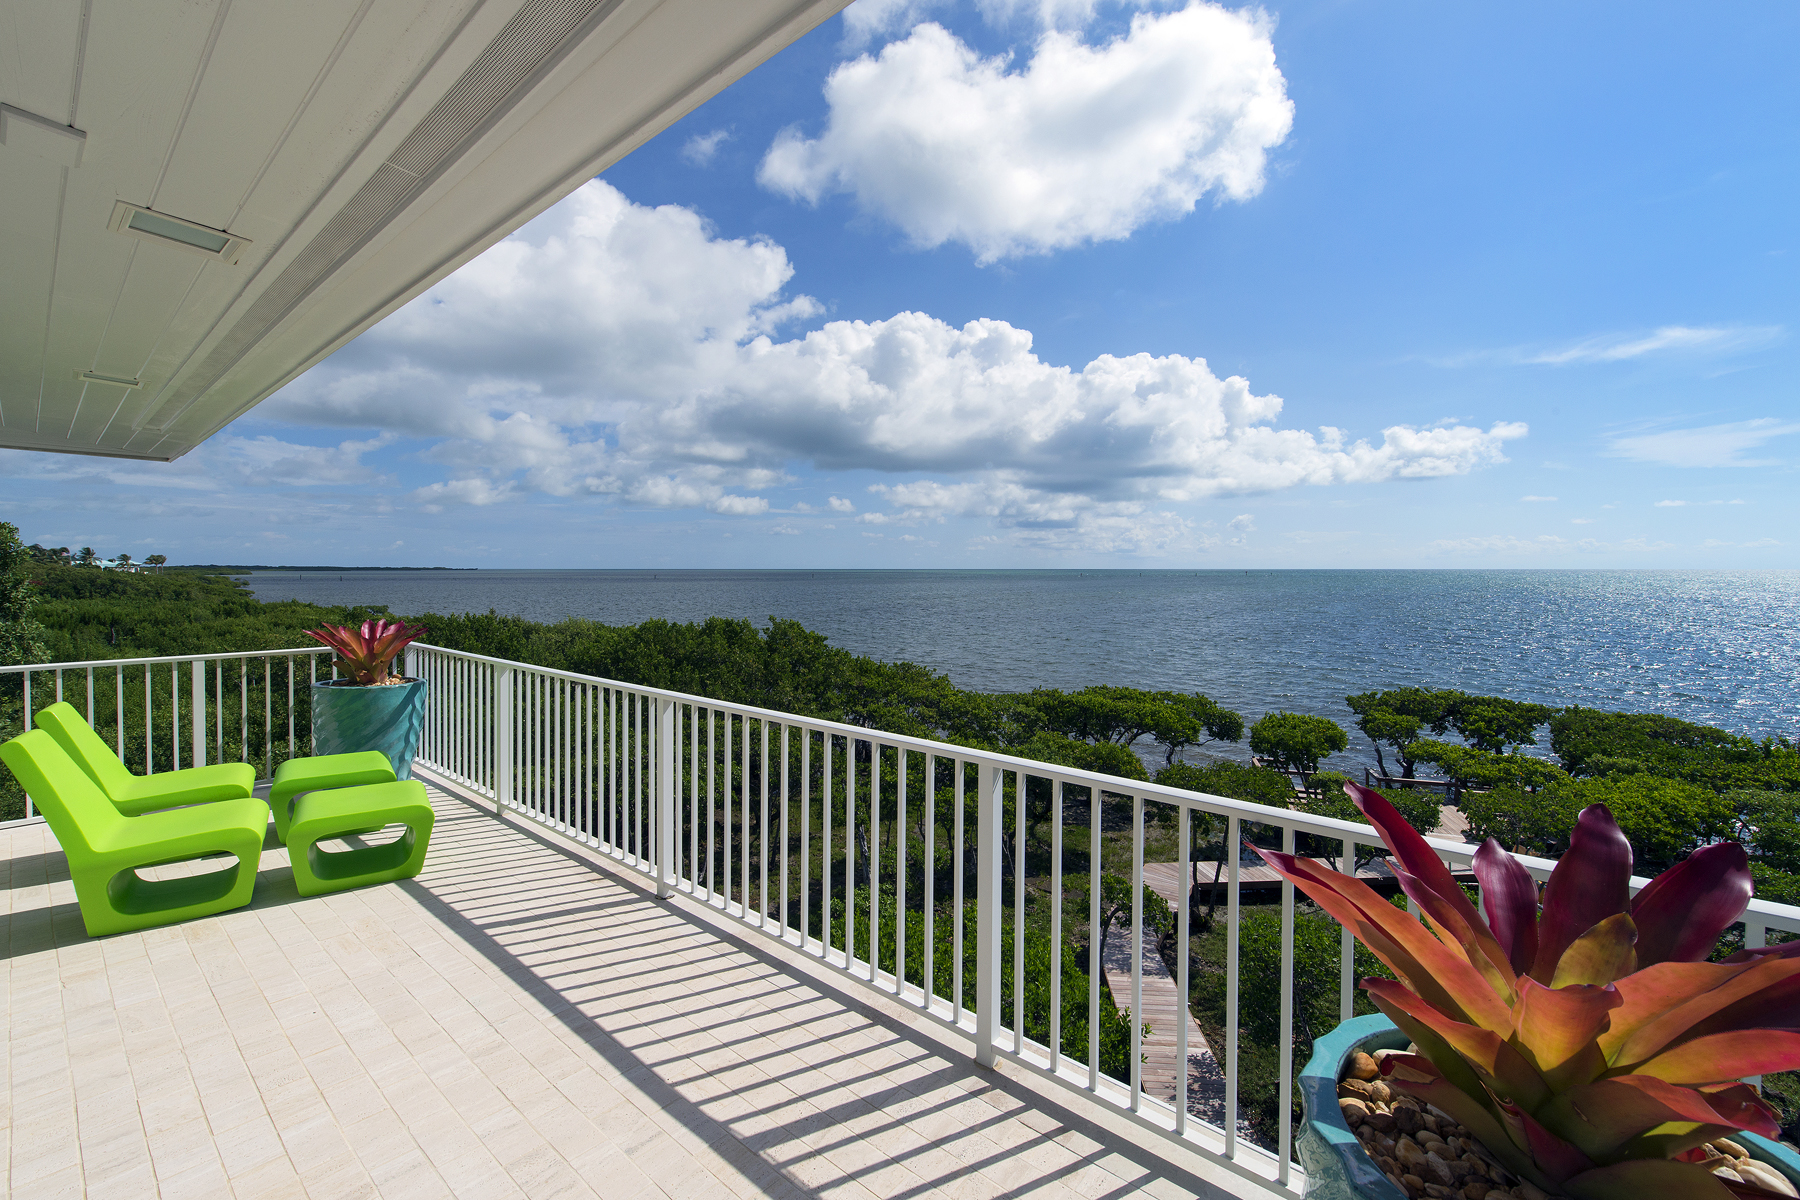 Casa Unifamiliar por un Venta en Captivating Ocean Front Views at Ocean Reef 15 Sunrise Cay Drive Ocean Reef Community, Key Largo, Florida, 33037 Estados Unidos